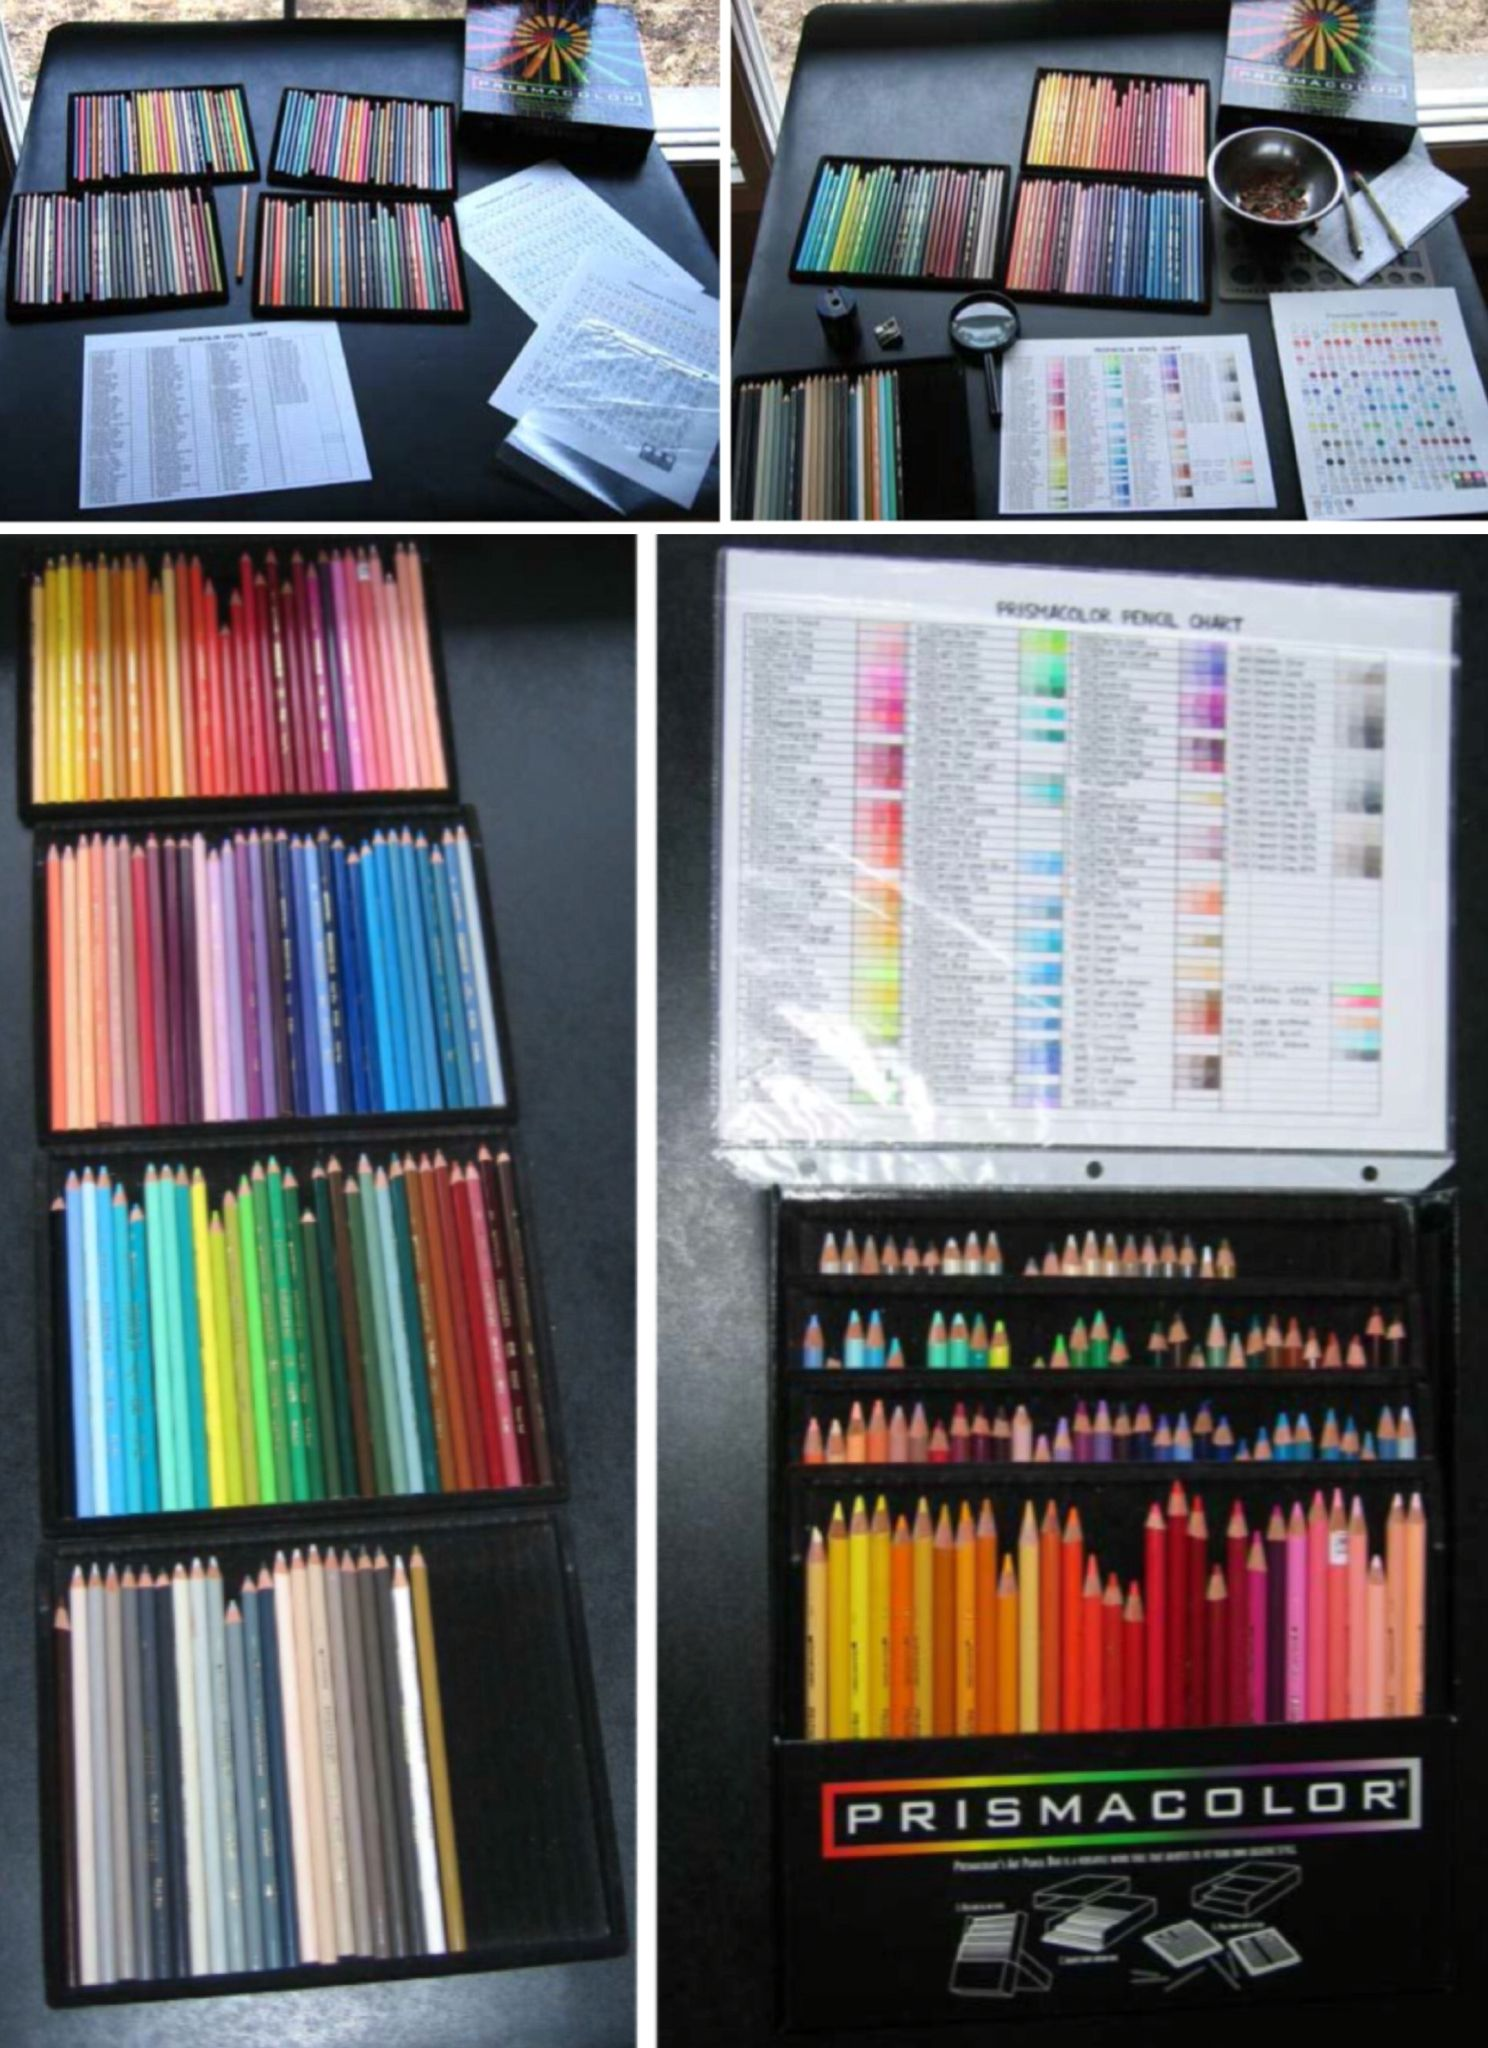 COLOUR THERAPY ADULT COLOURING BOOK PENCIL RANGE In Storage Case Stationery Set